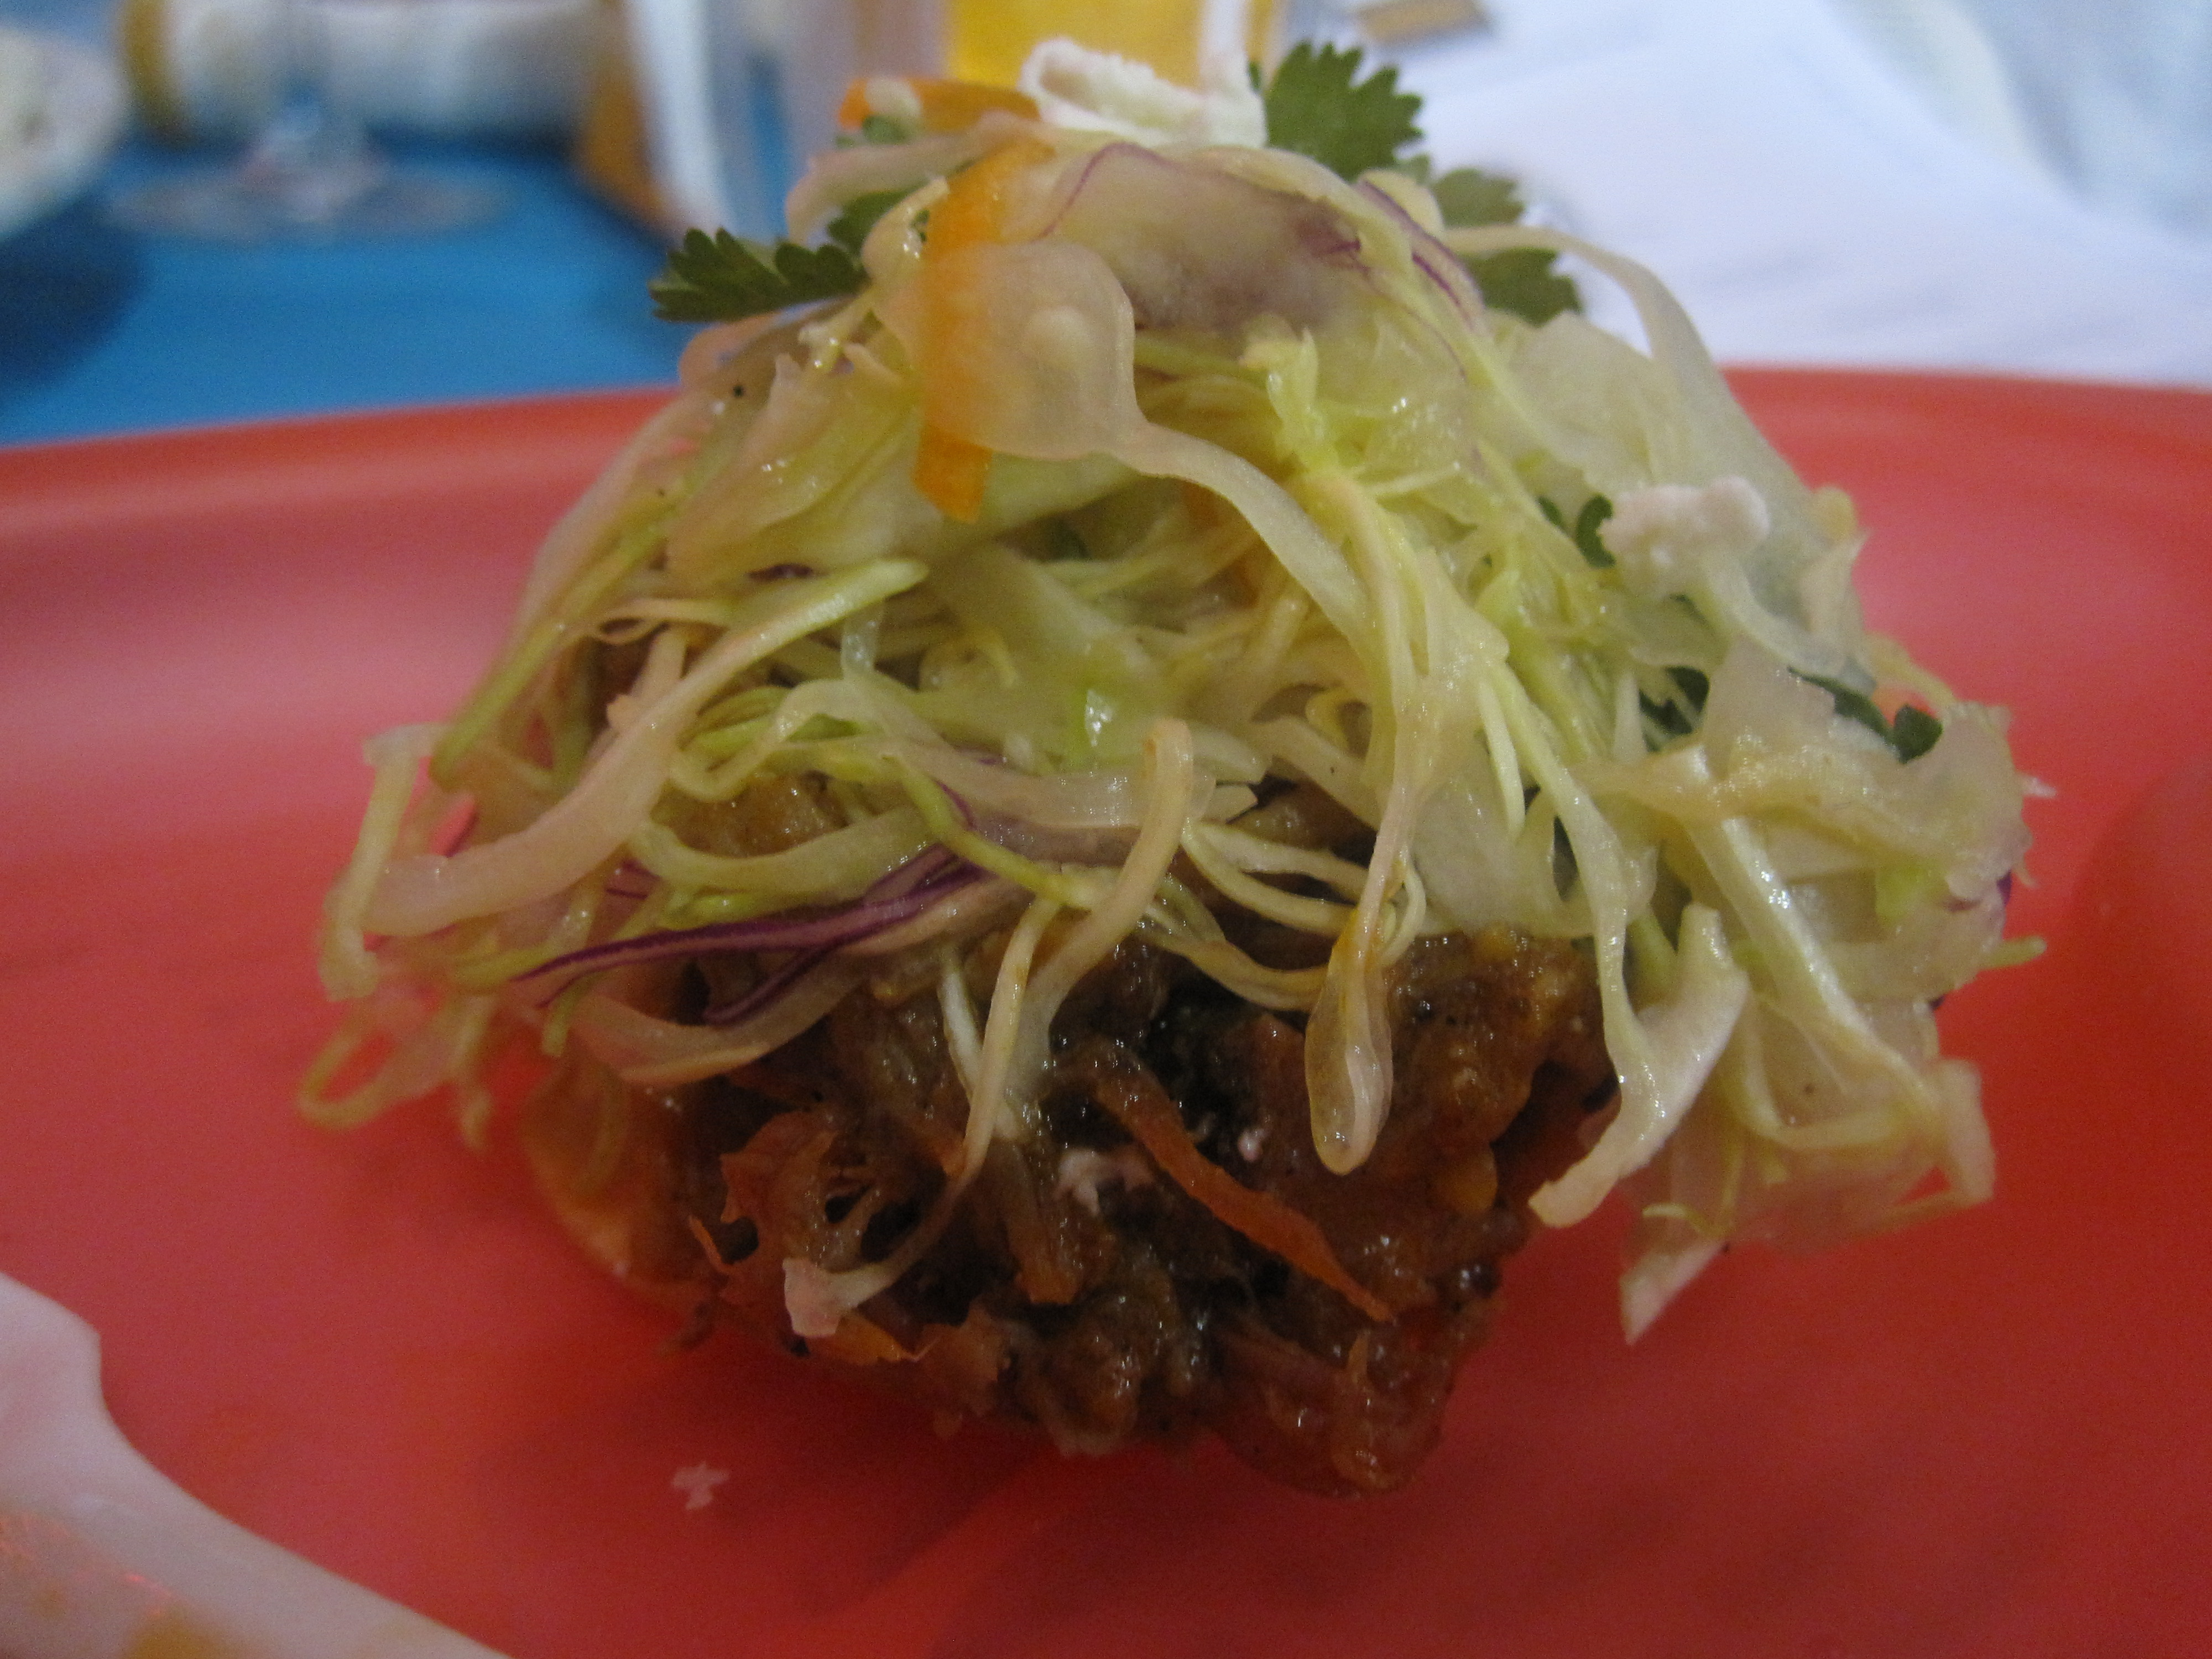 This miniature taco was a one-bite taste sensation. It had a crunchy bottom, juicy pork topping, and crisp coleslaw garnish.